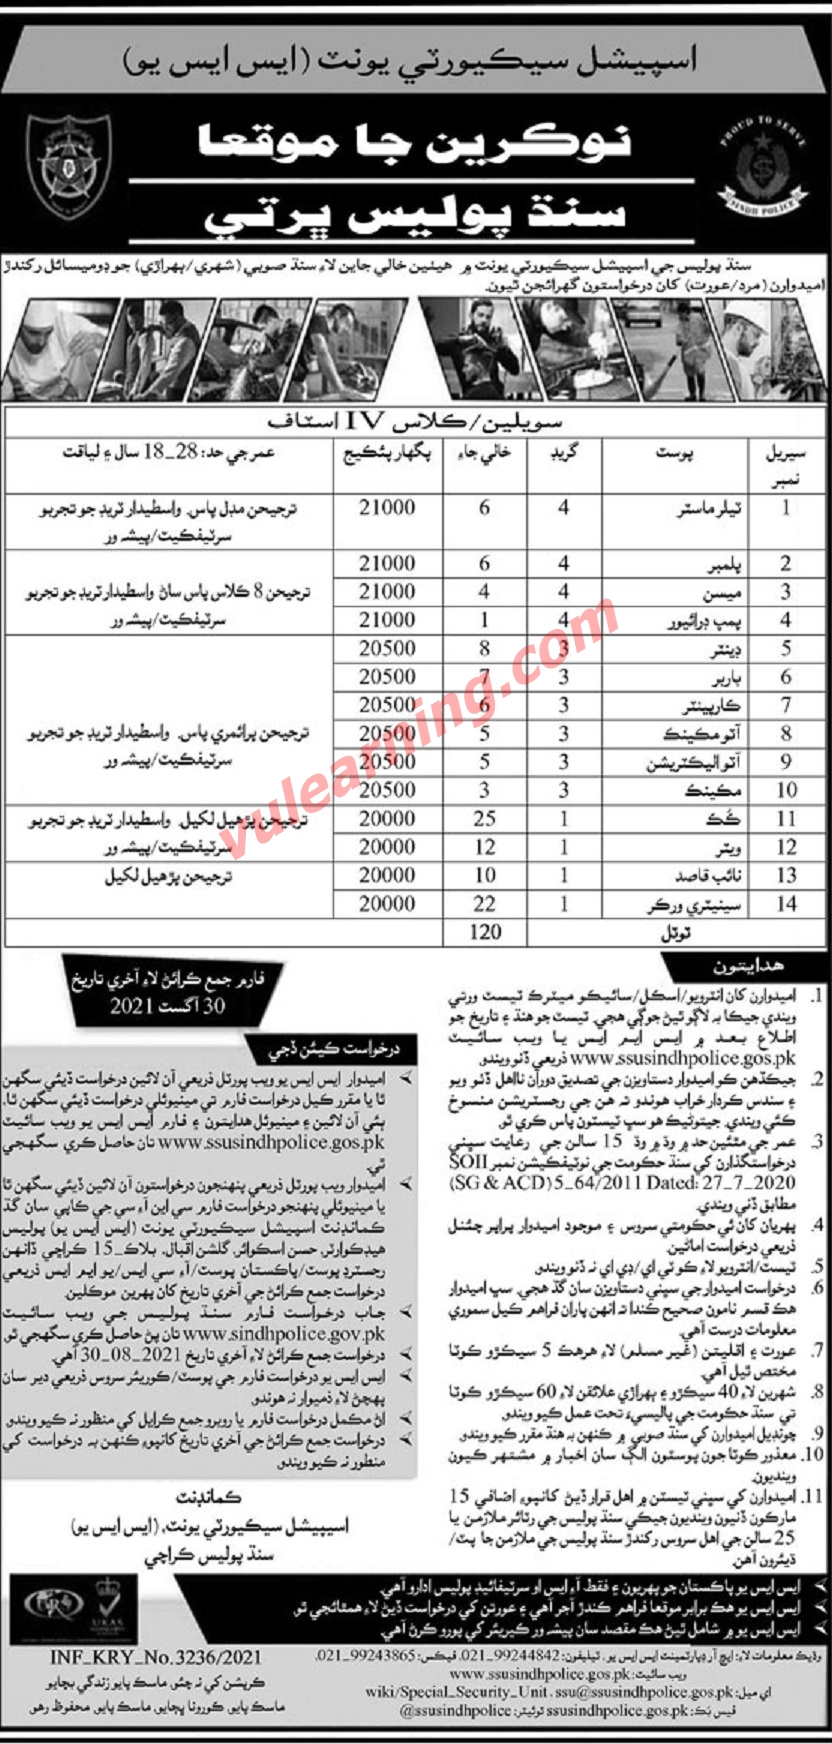 special security unit sindh police jobs august 2021 for 120 civilian class iv staff online application form latest